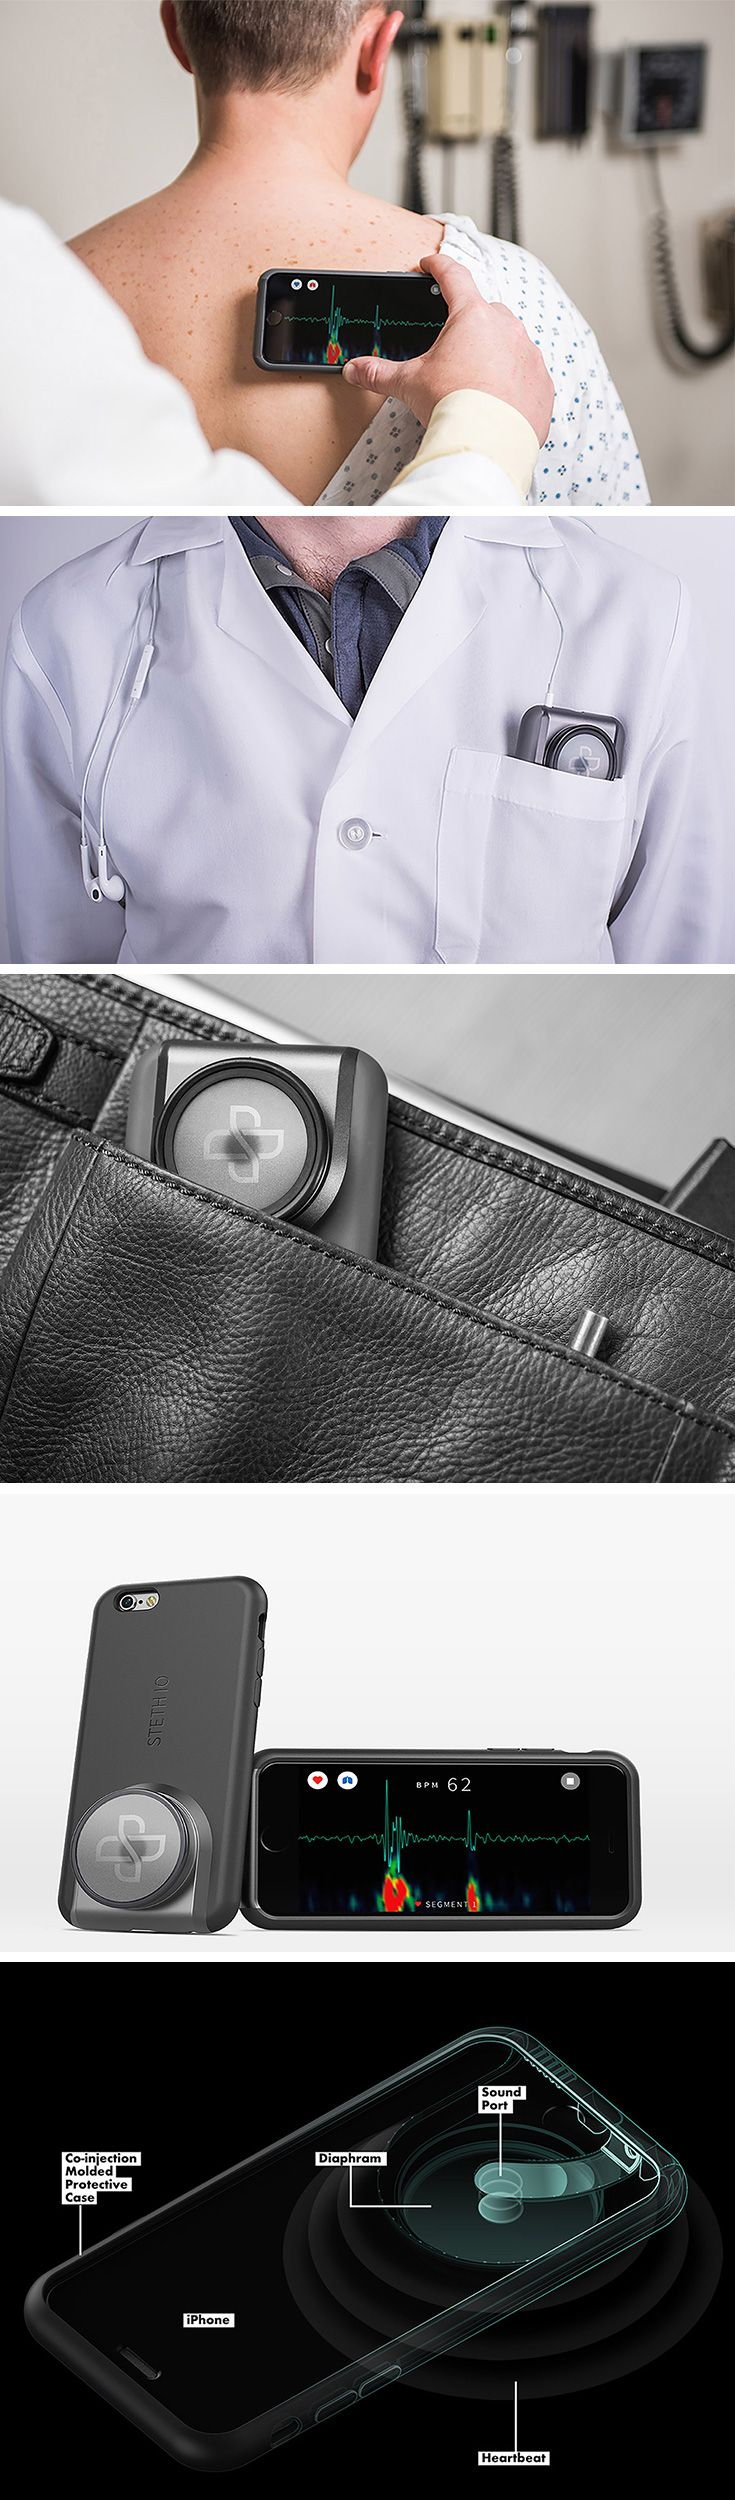 The Steth IO smartphone case modernizes the 200-year-old stethoscope! The case captures audio sounds made by the lungs or a heartbeat and converts them into a visualization on the screen. Rather than just listening to a heart rhythm like they would using a traditional stethoscope, medical professionals can hear the heartbeat, visualize it, record the data, and review it anytime. Something impossible with a standard stethoscope!